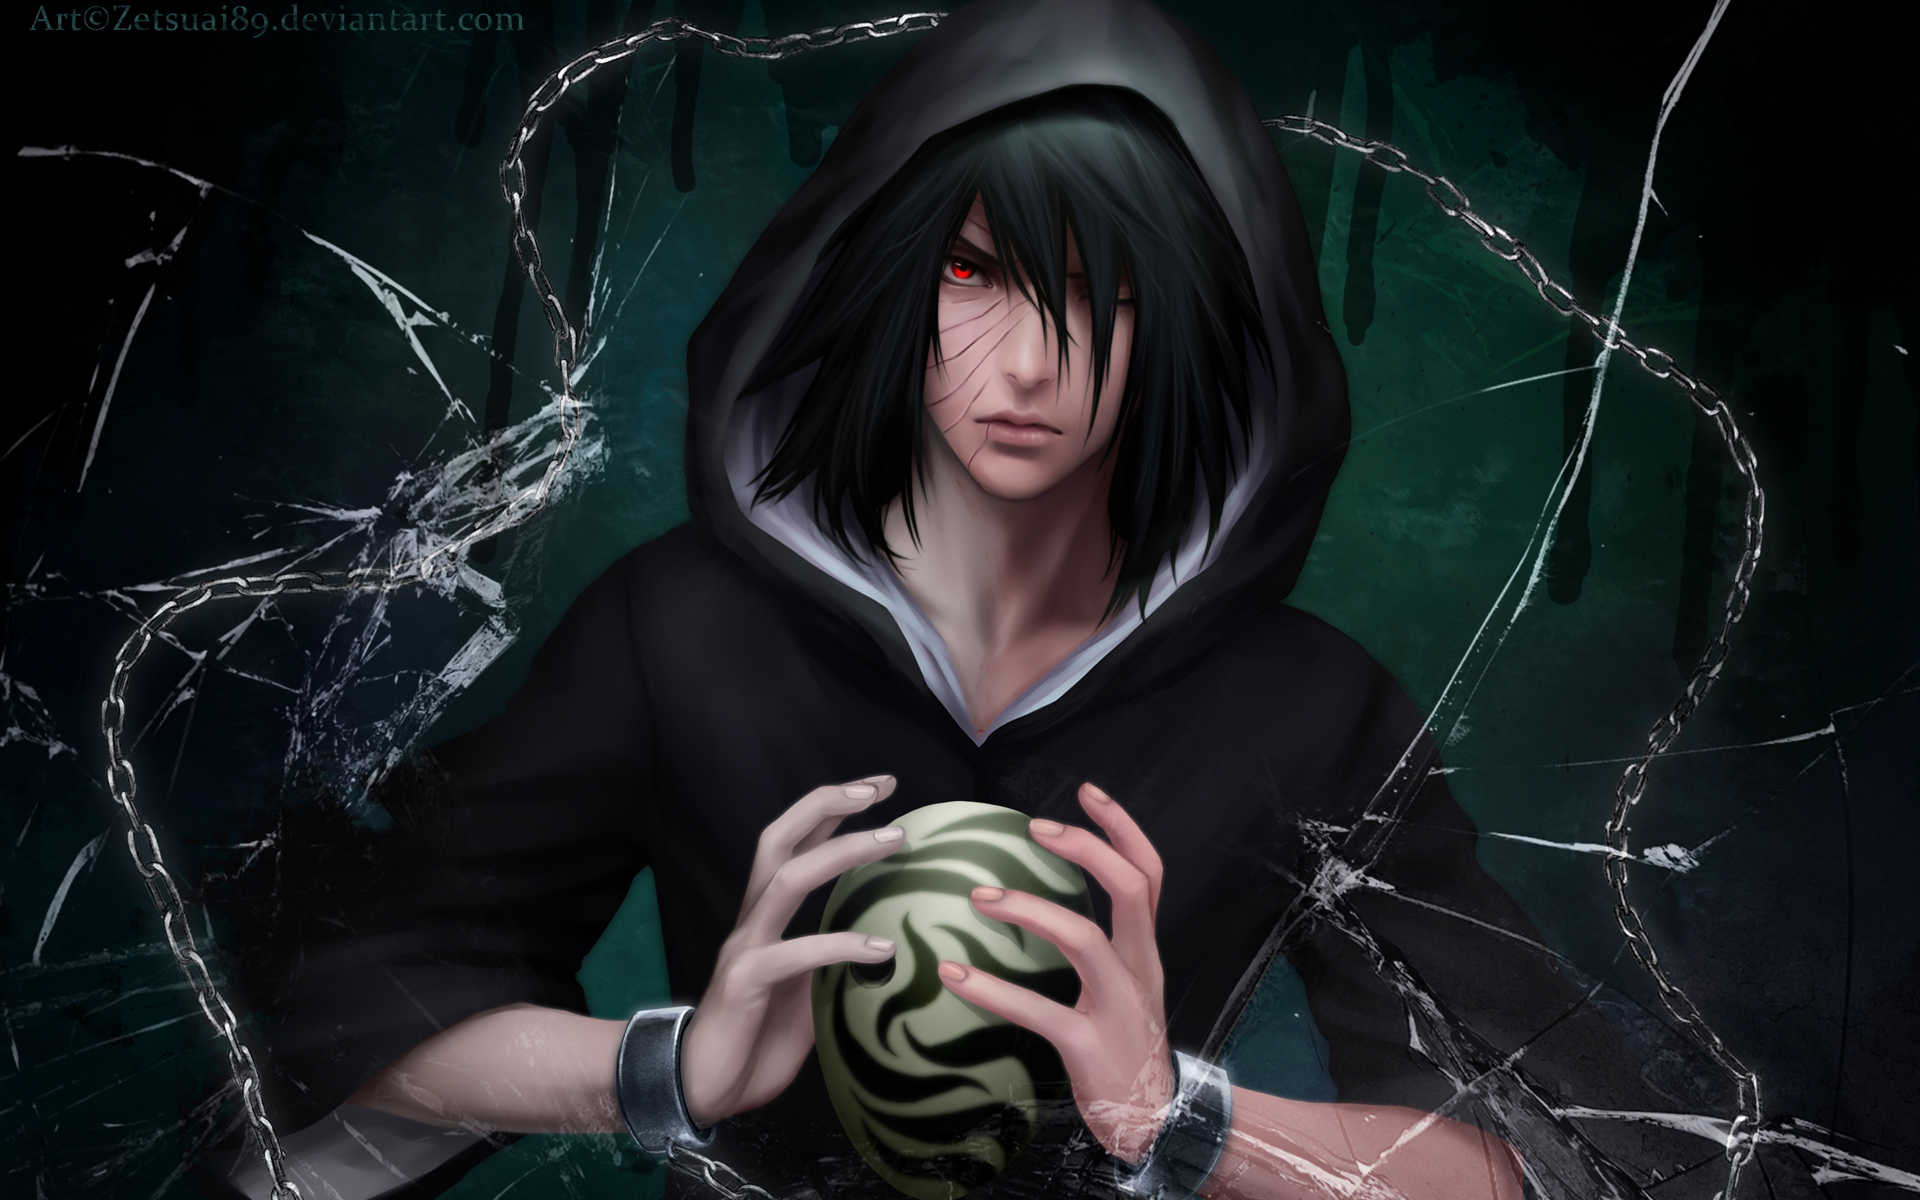 tobi obito sharingan mask anime wallpaper 1920x1200 full original